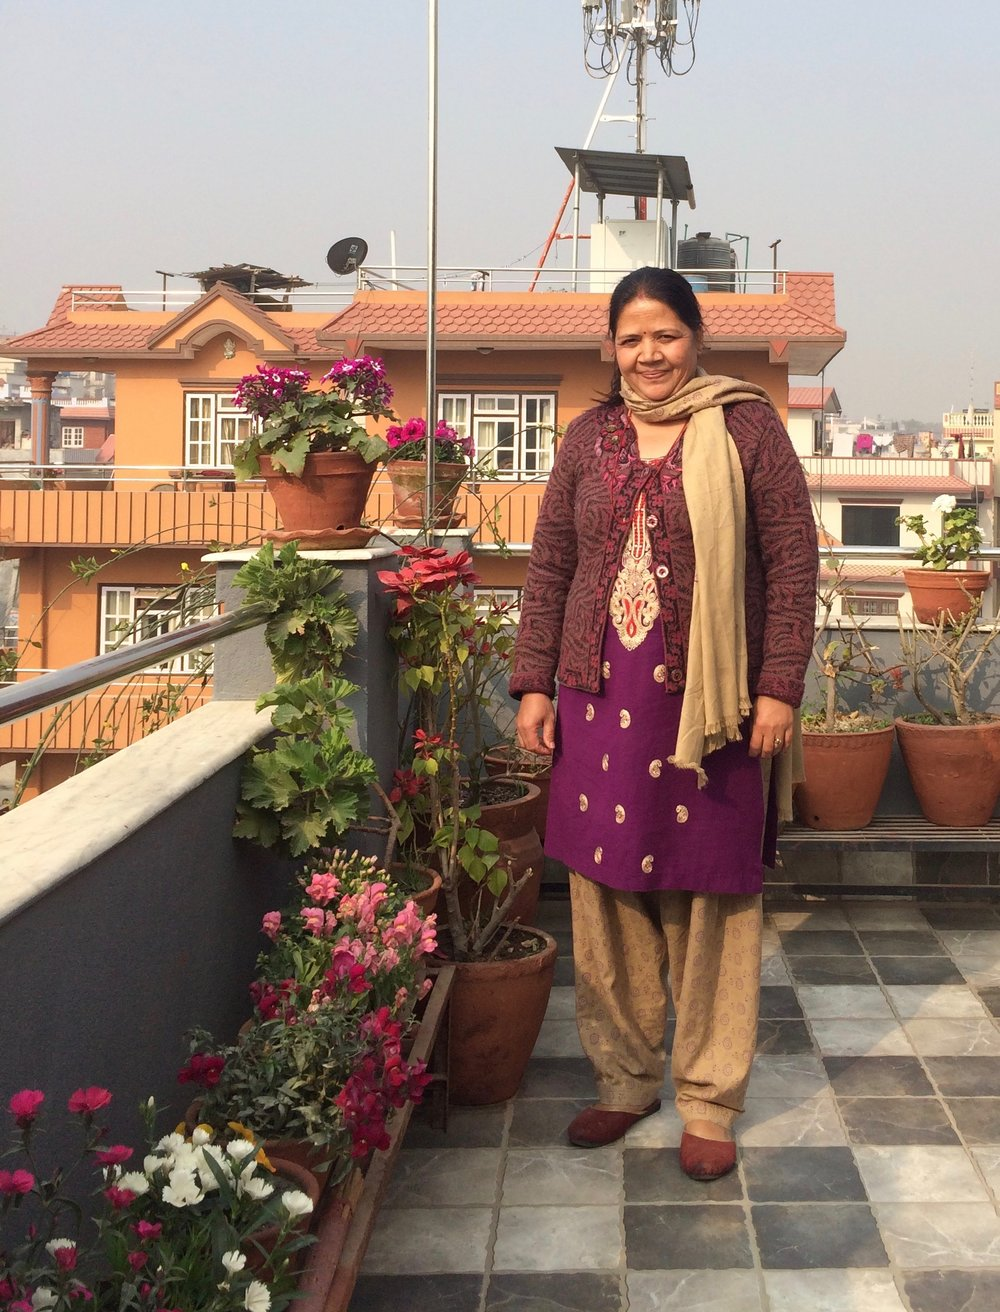 Tika on the rooftop surrounded by her beloved flower garden